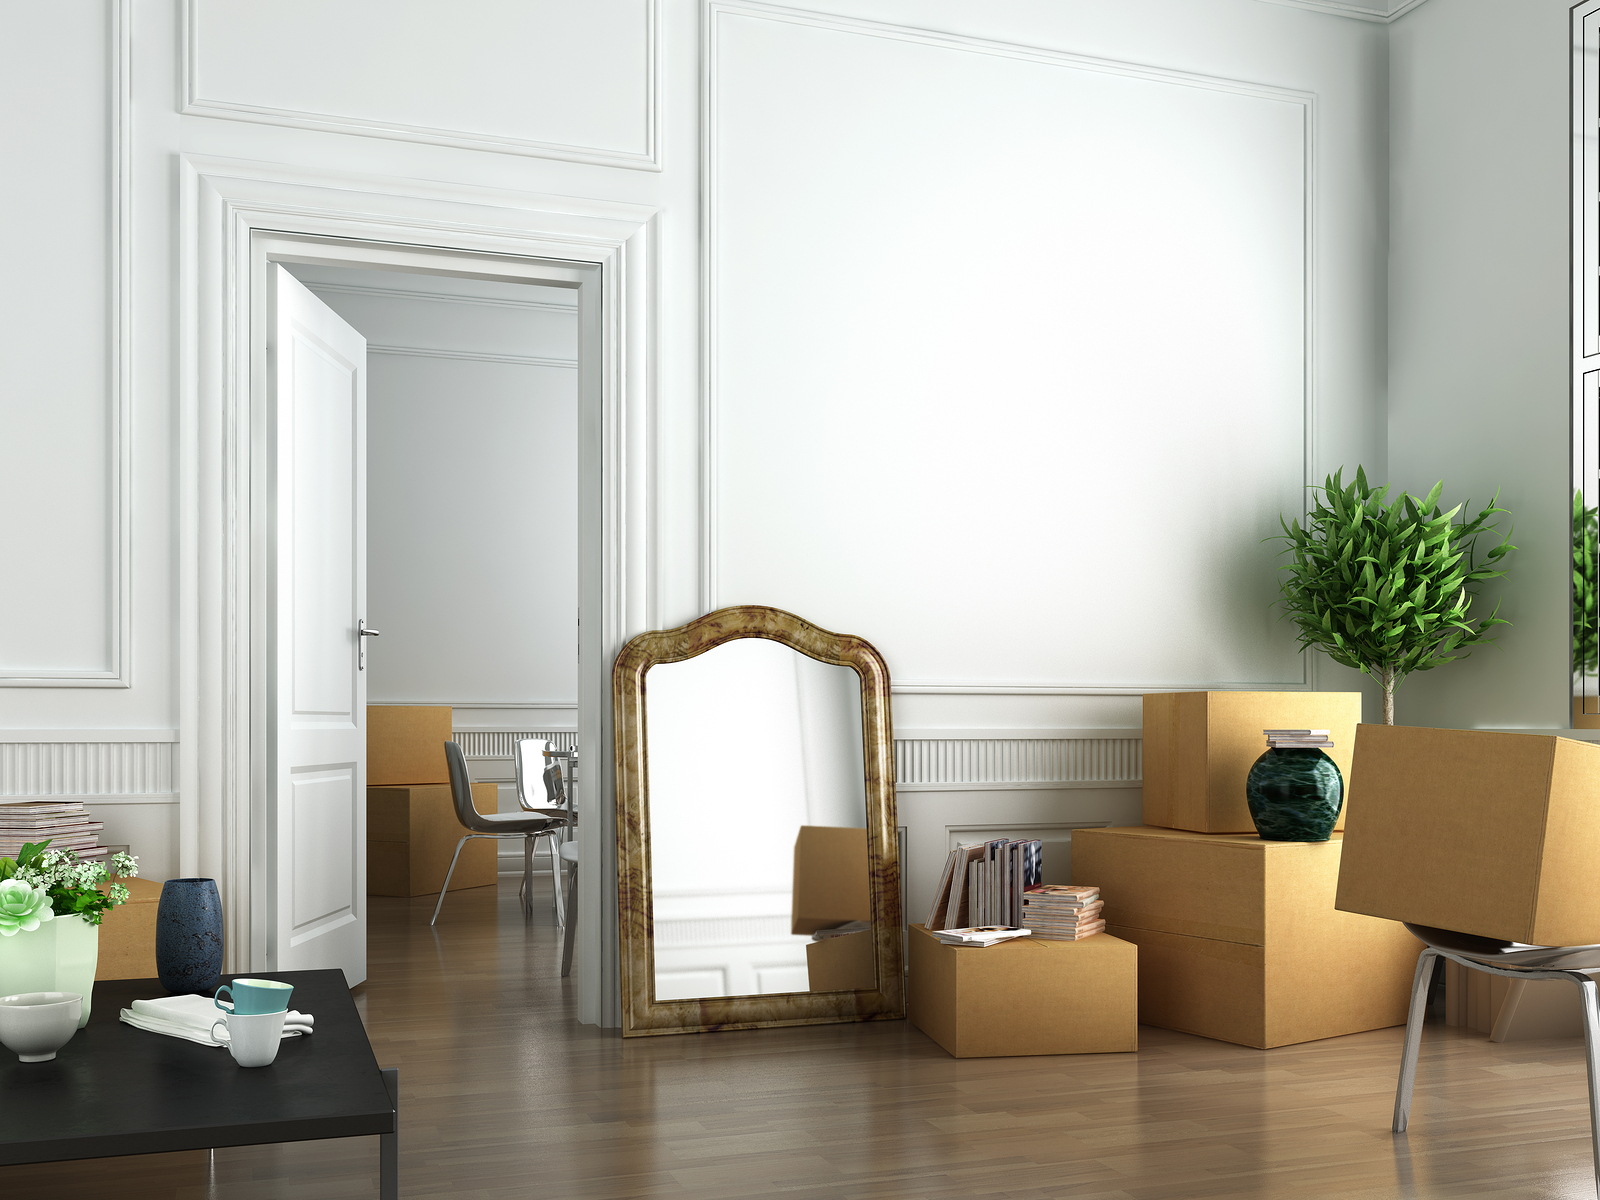 bigstock-moving-in-to-a-new-flat-5043371.jpg